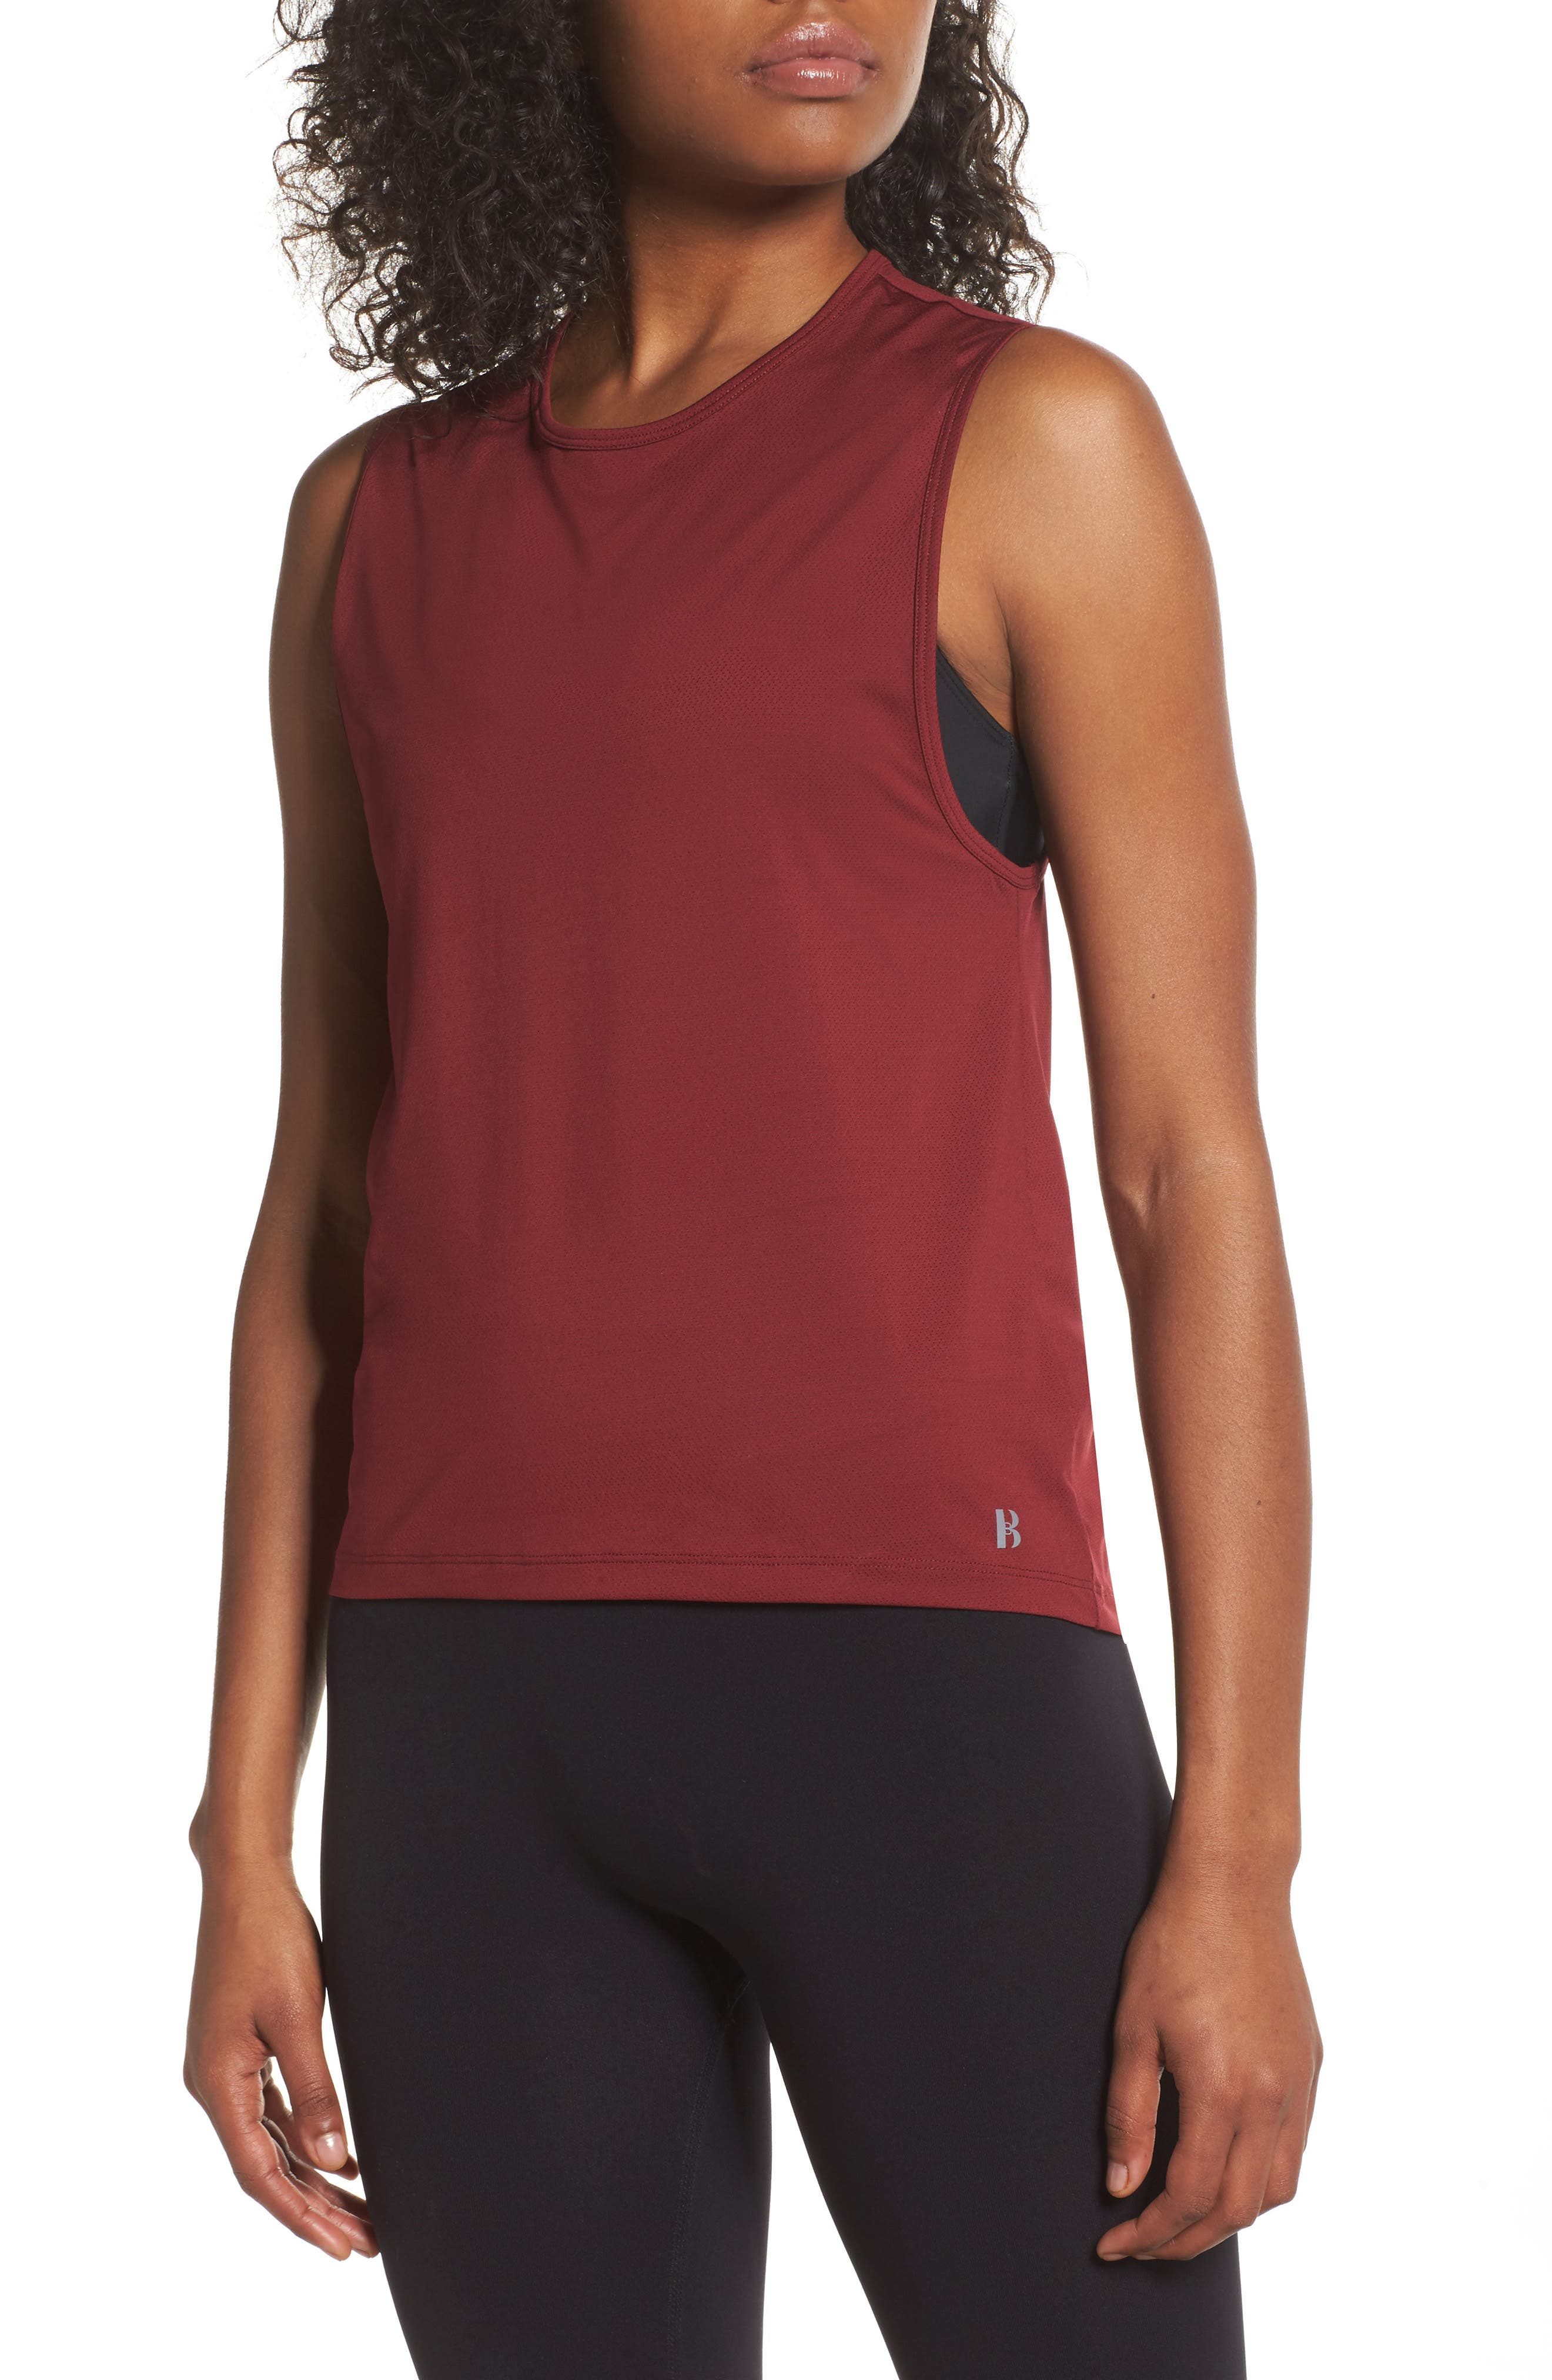 BoomBoom Athletica Muscle Tank,                         Main,                         color, Oxblood